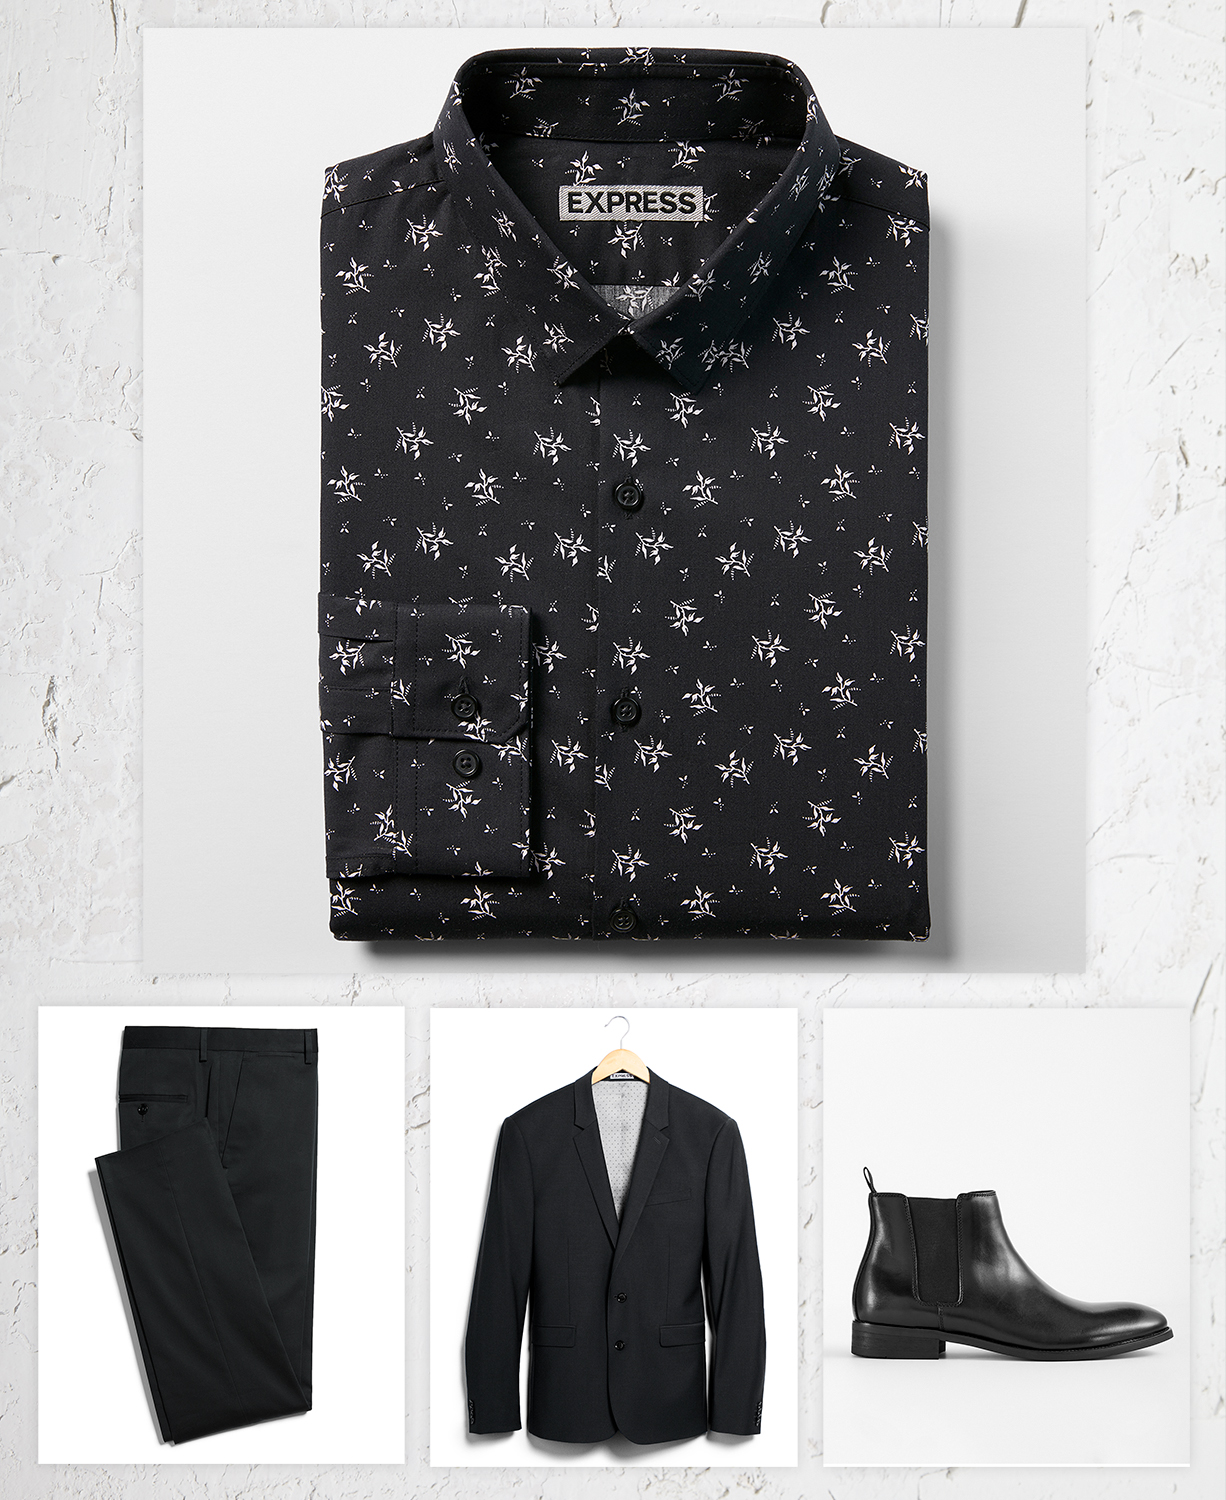 mens-floral-dress-shirt-black-suit-chelsea-boots